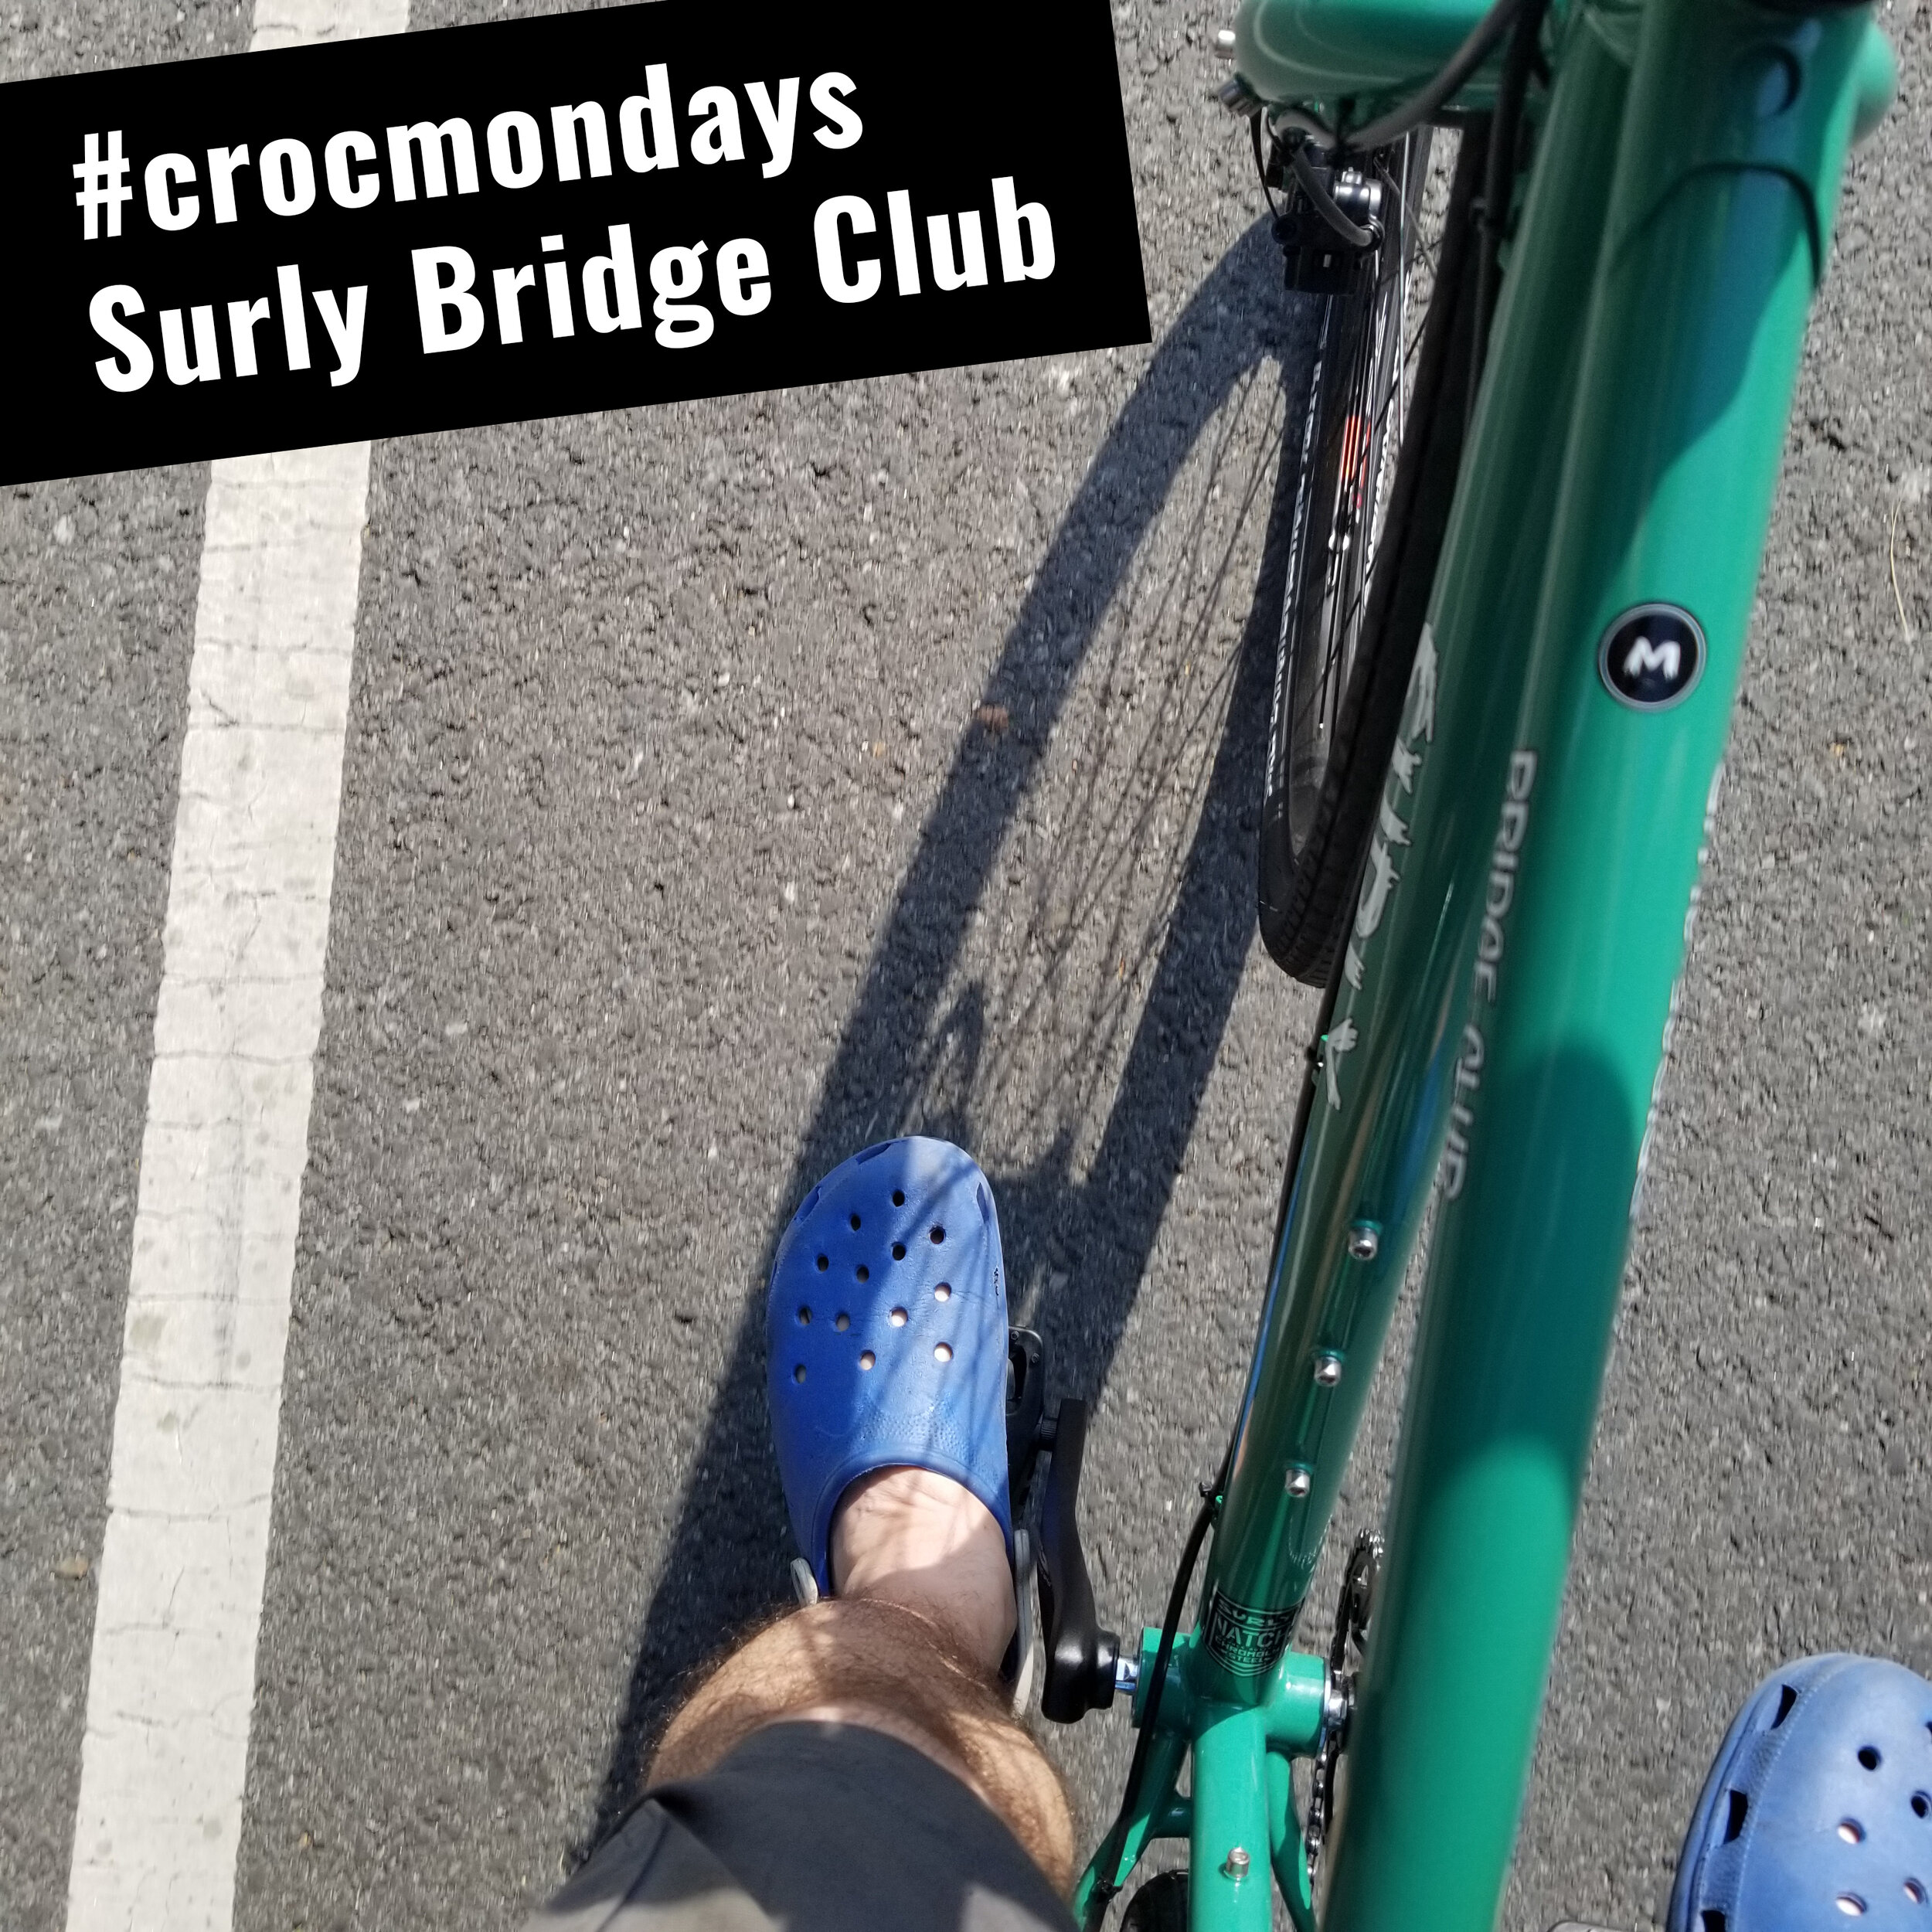 #crocmondays The Surly Bridge Club